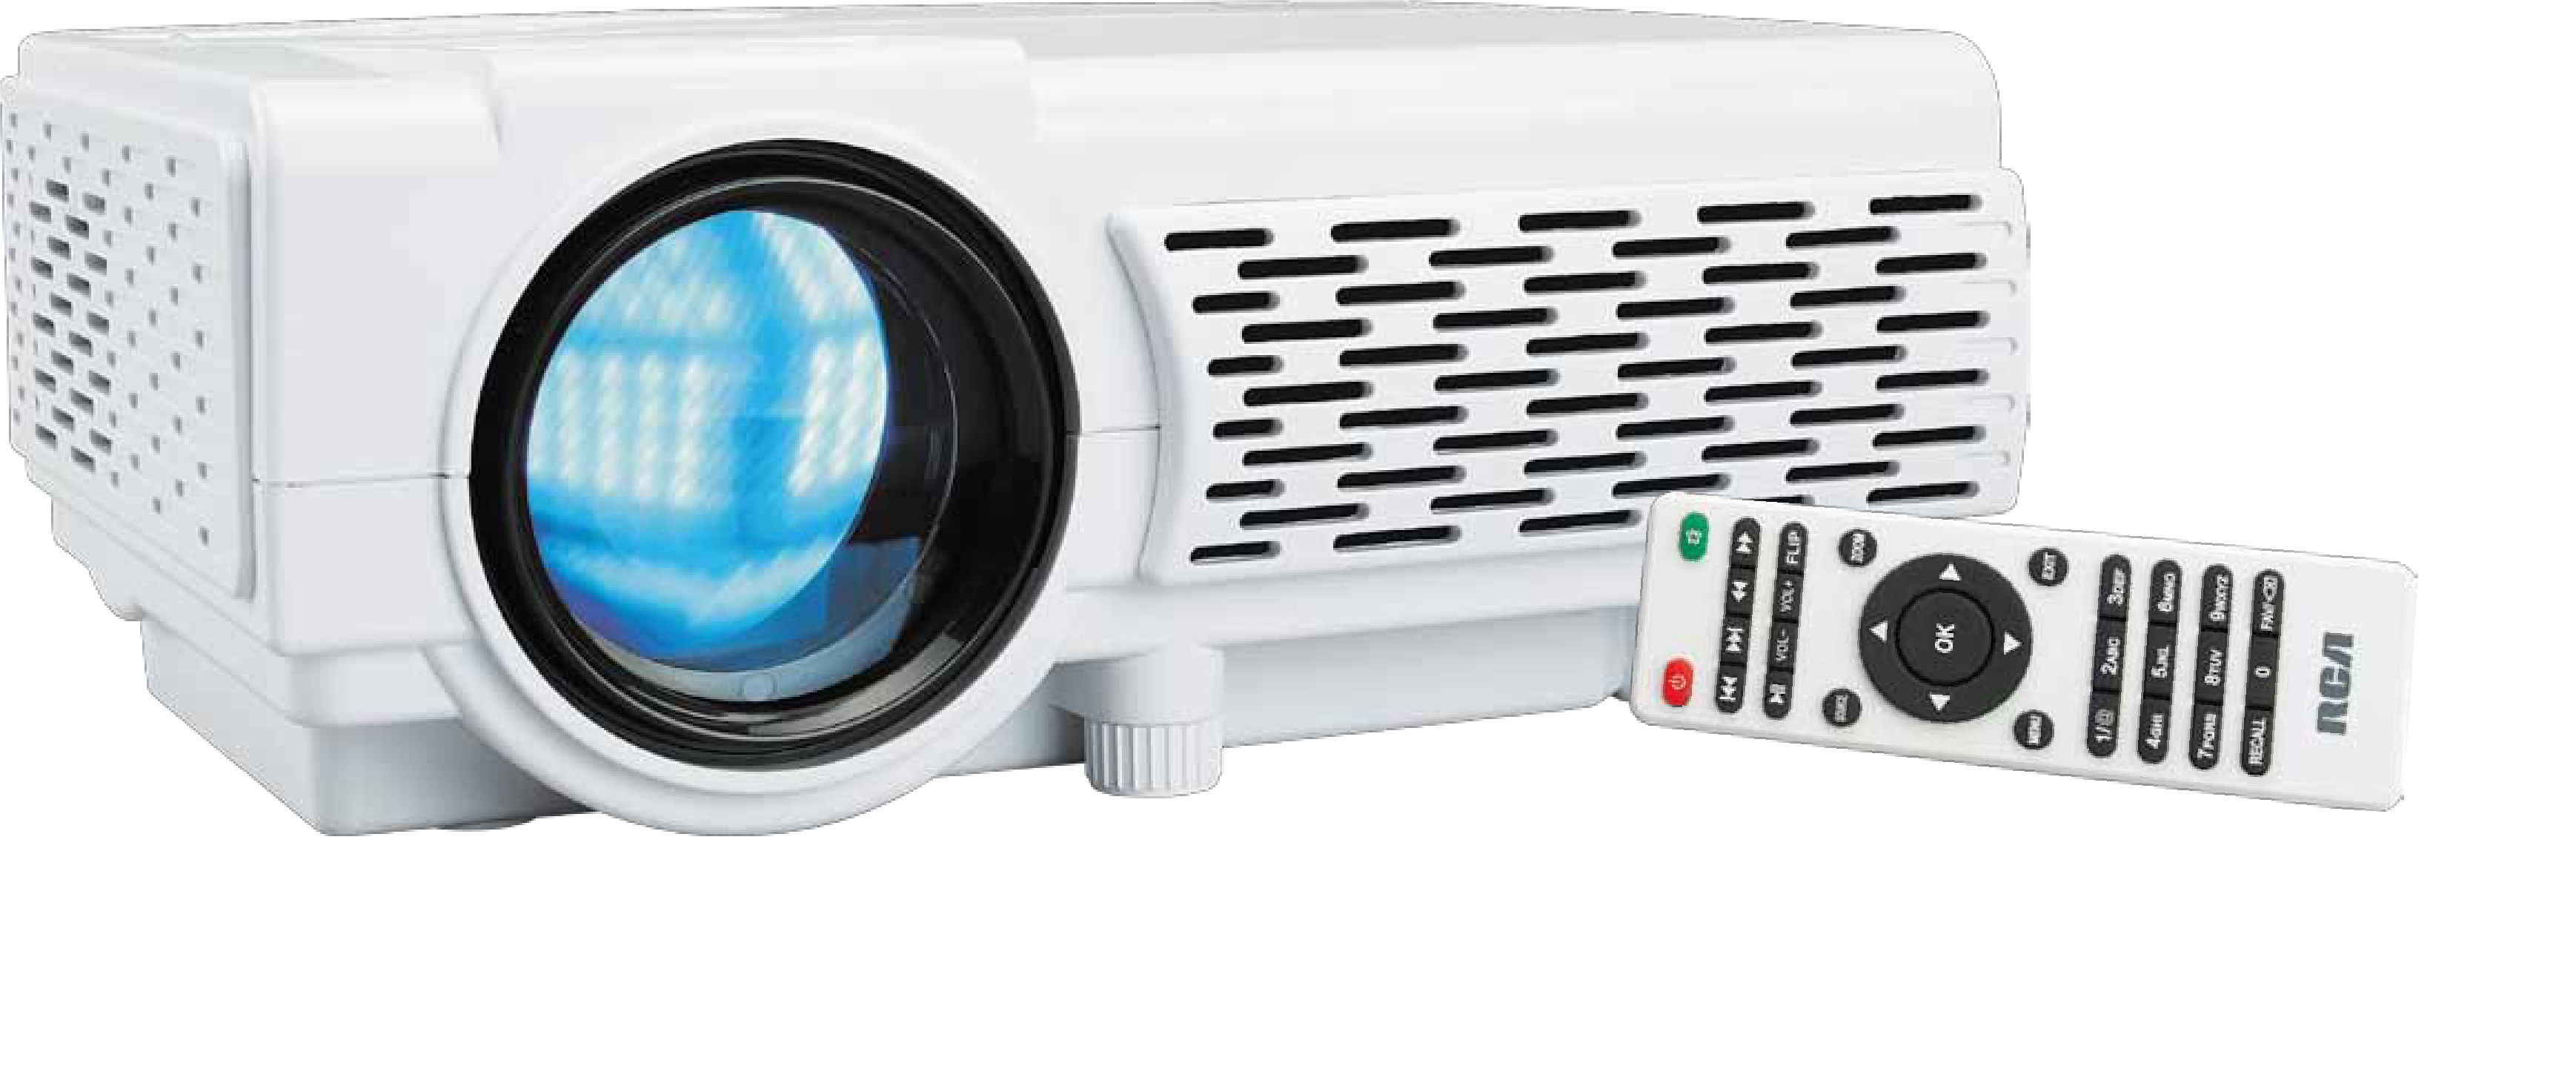 480P HOME THEATER PROJECTOR| Curtis International